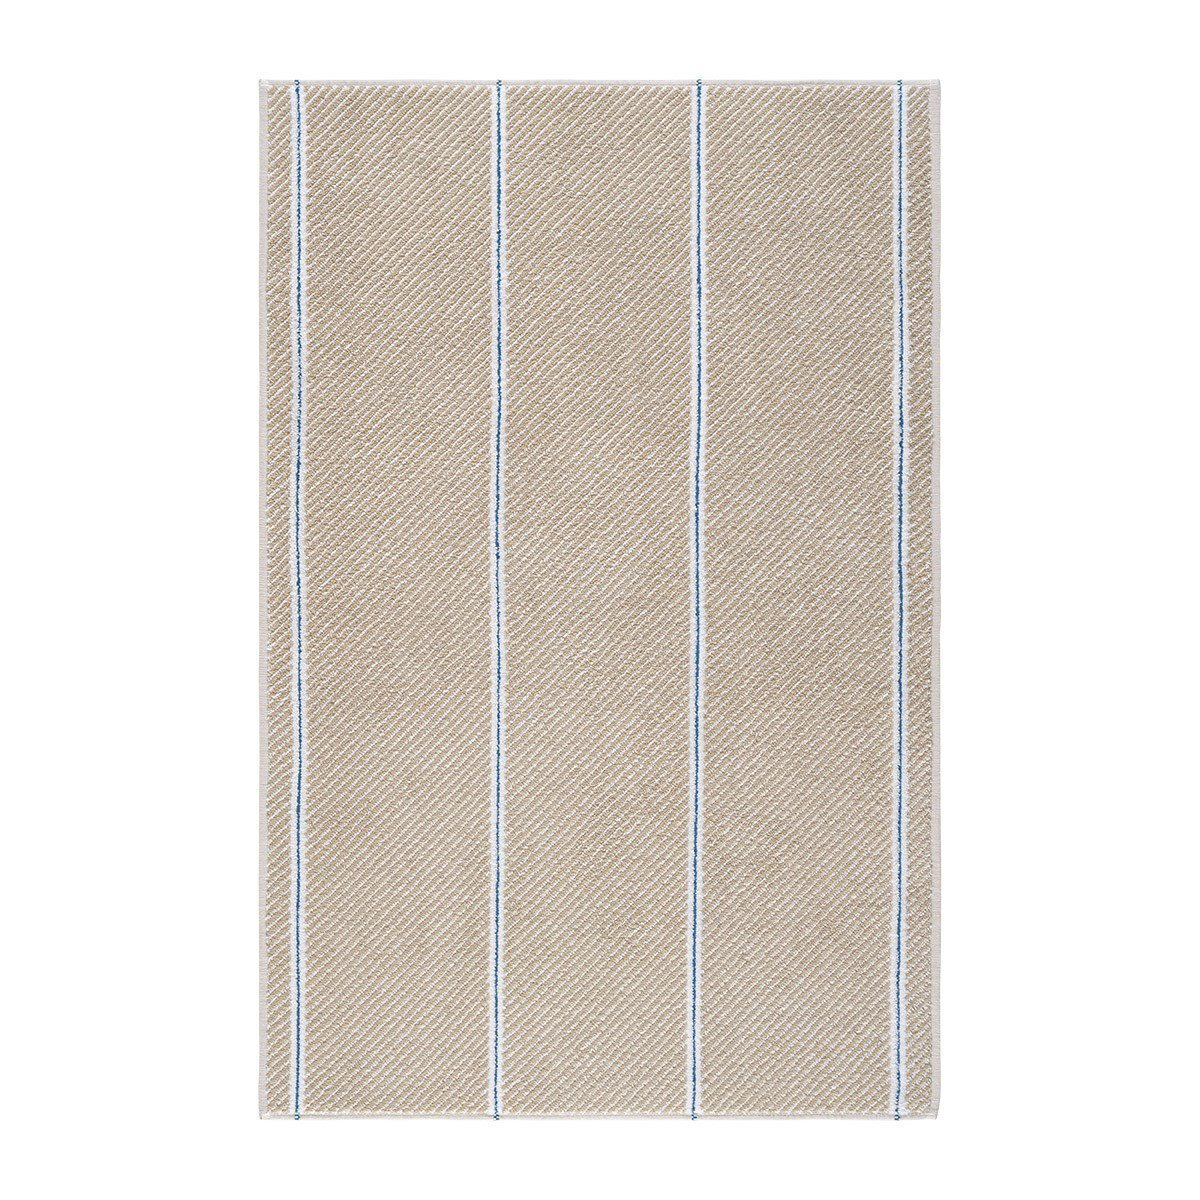 Fig Linens - Bermude Beige Bath Towels by Hugo Boss